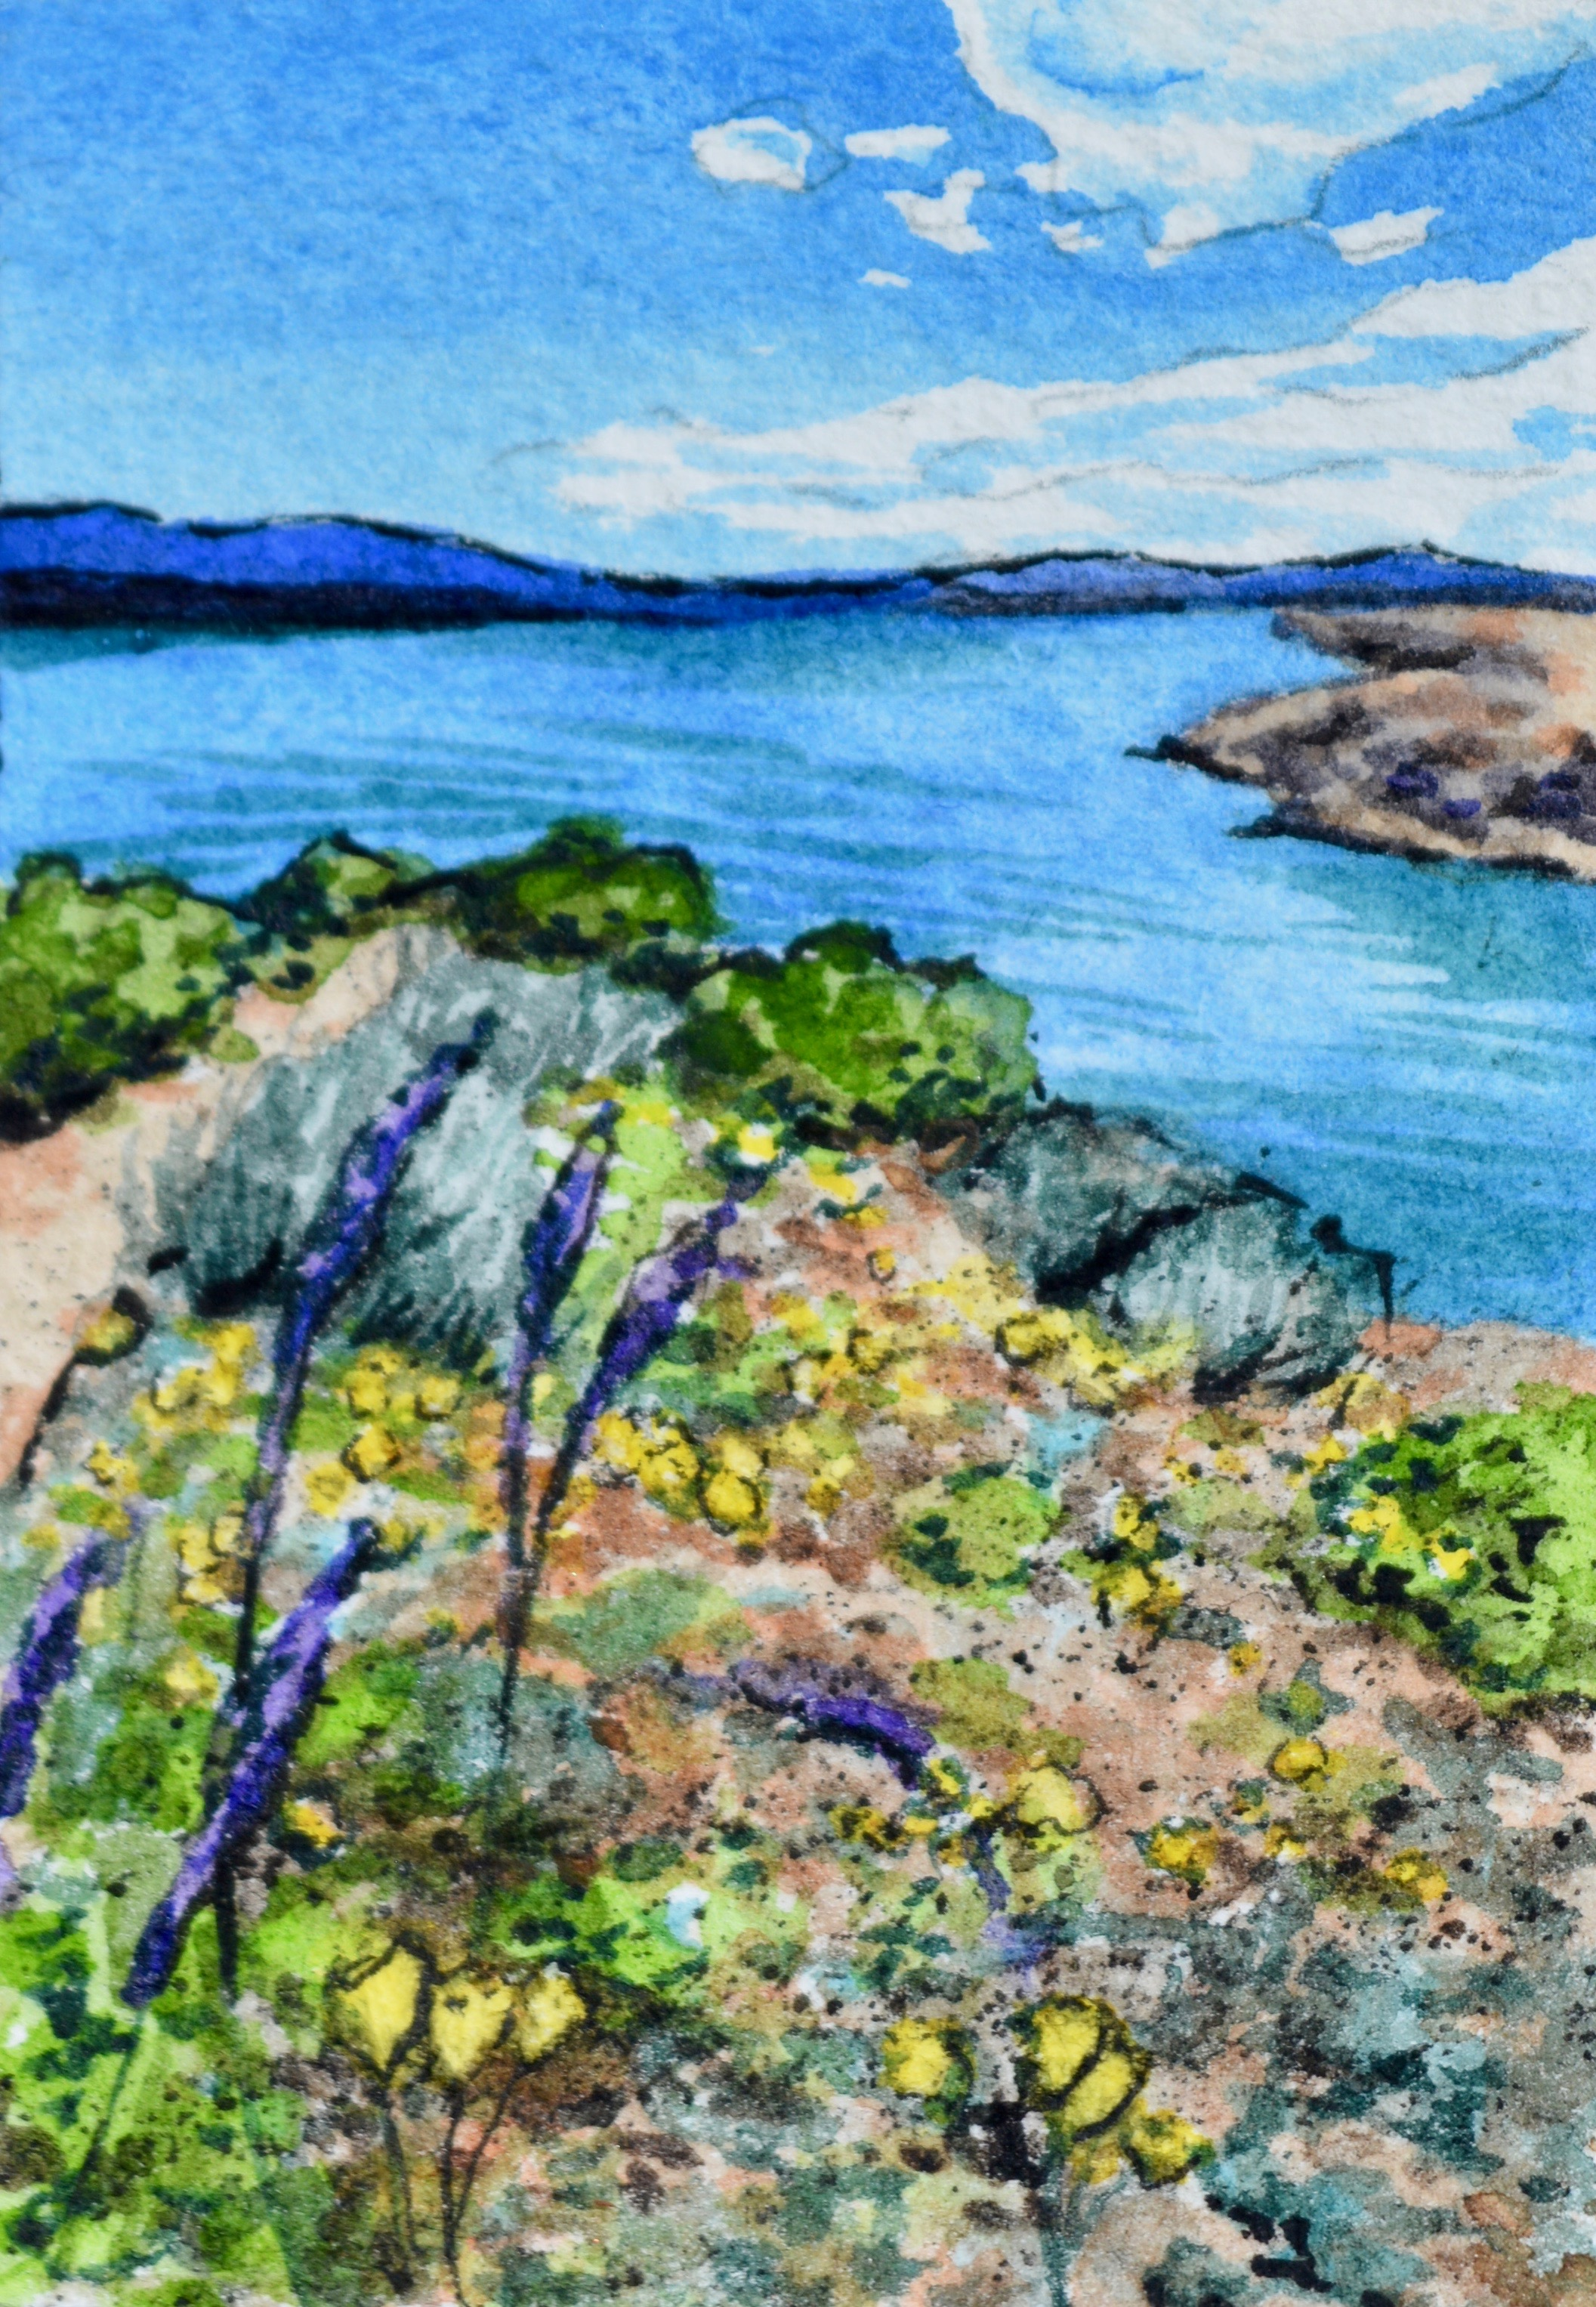 """""""Cattail Cove State Park, Arizona: 3/2/19, 15:44:23""""  For sale as of this blog posting  2x3"""""""